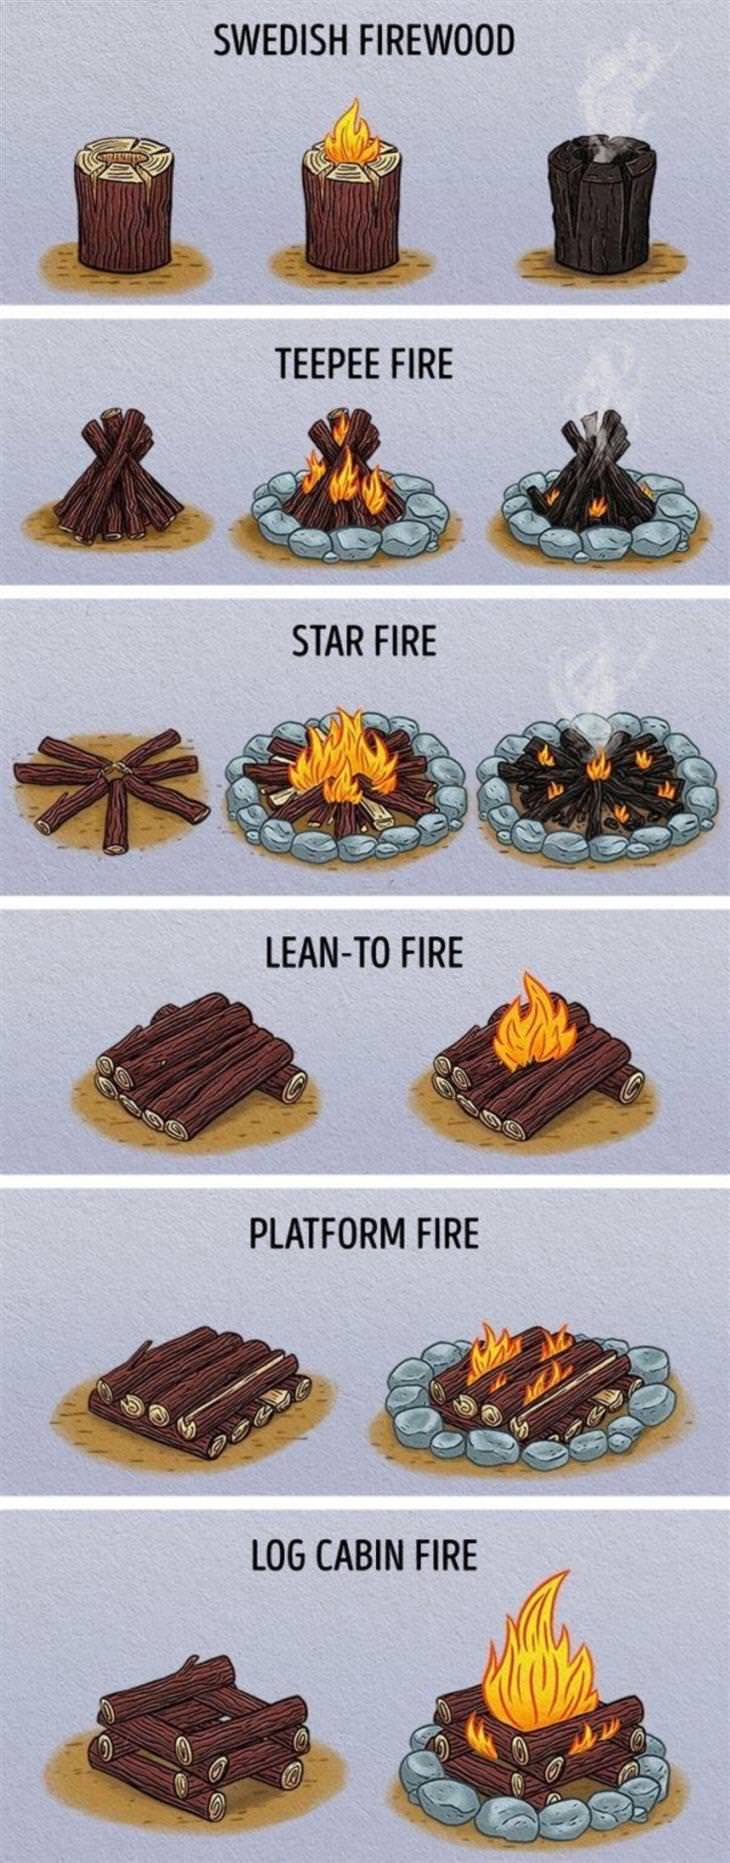 Interesting Charts The various ways to make a fire